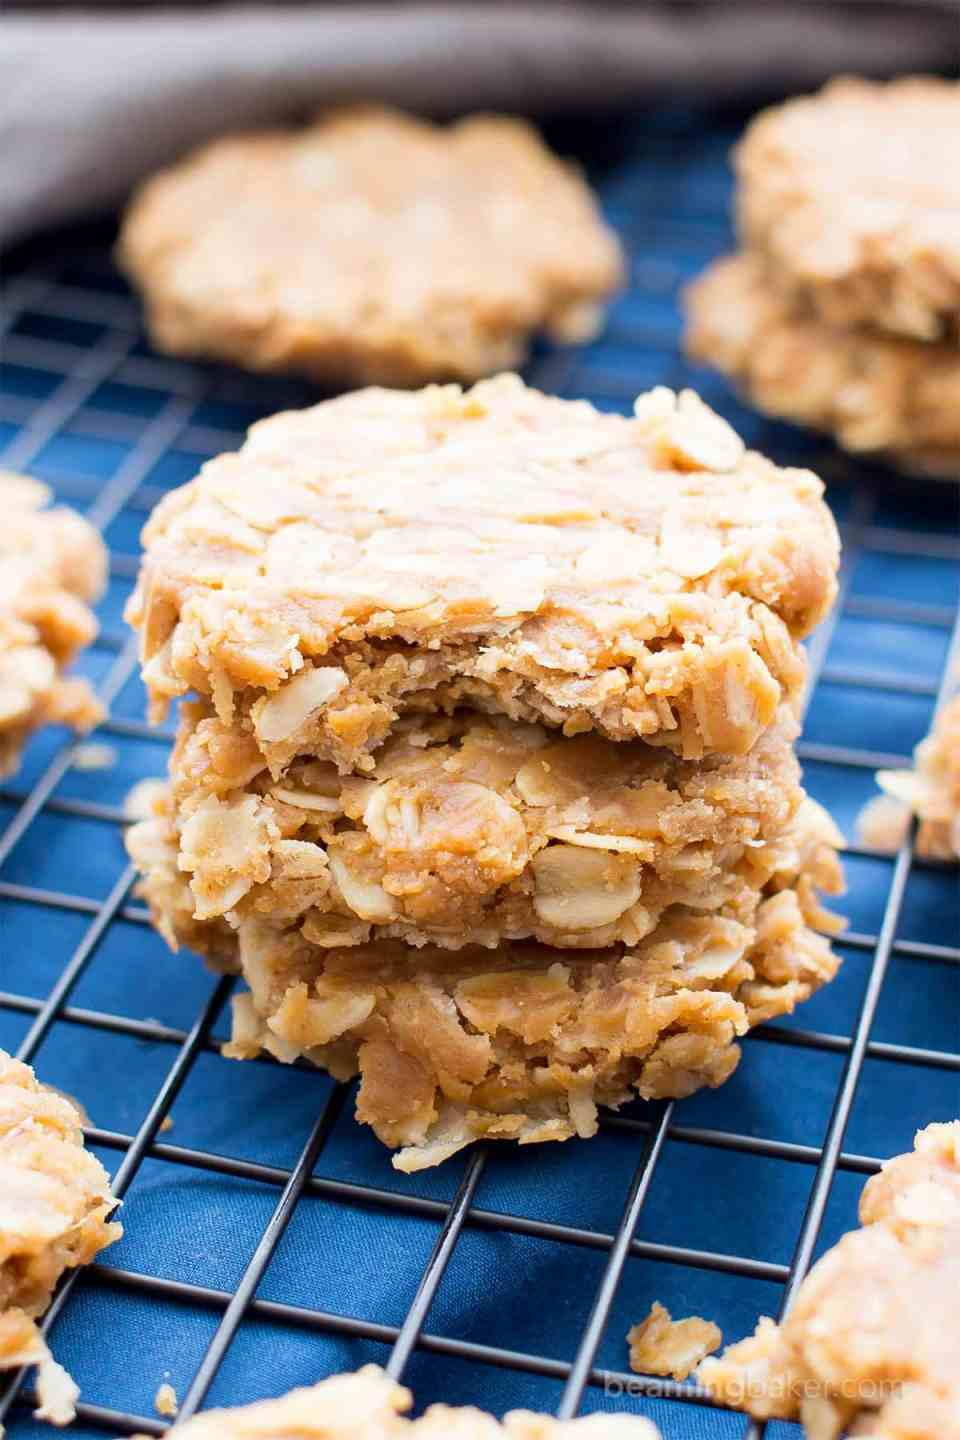 3 Ingredient No Bake Peanut Butter Oatmeal Cookies